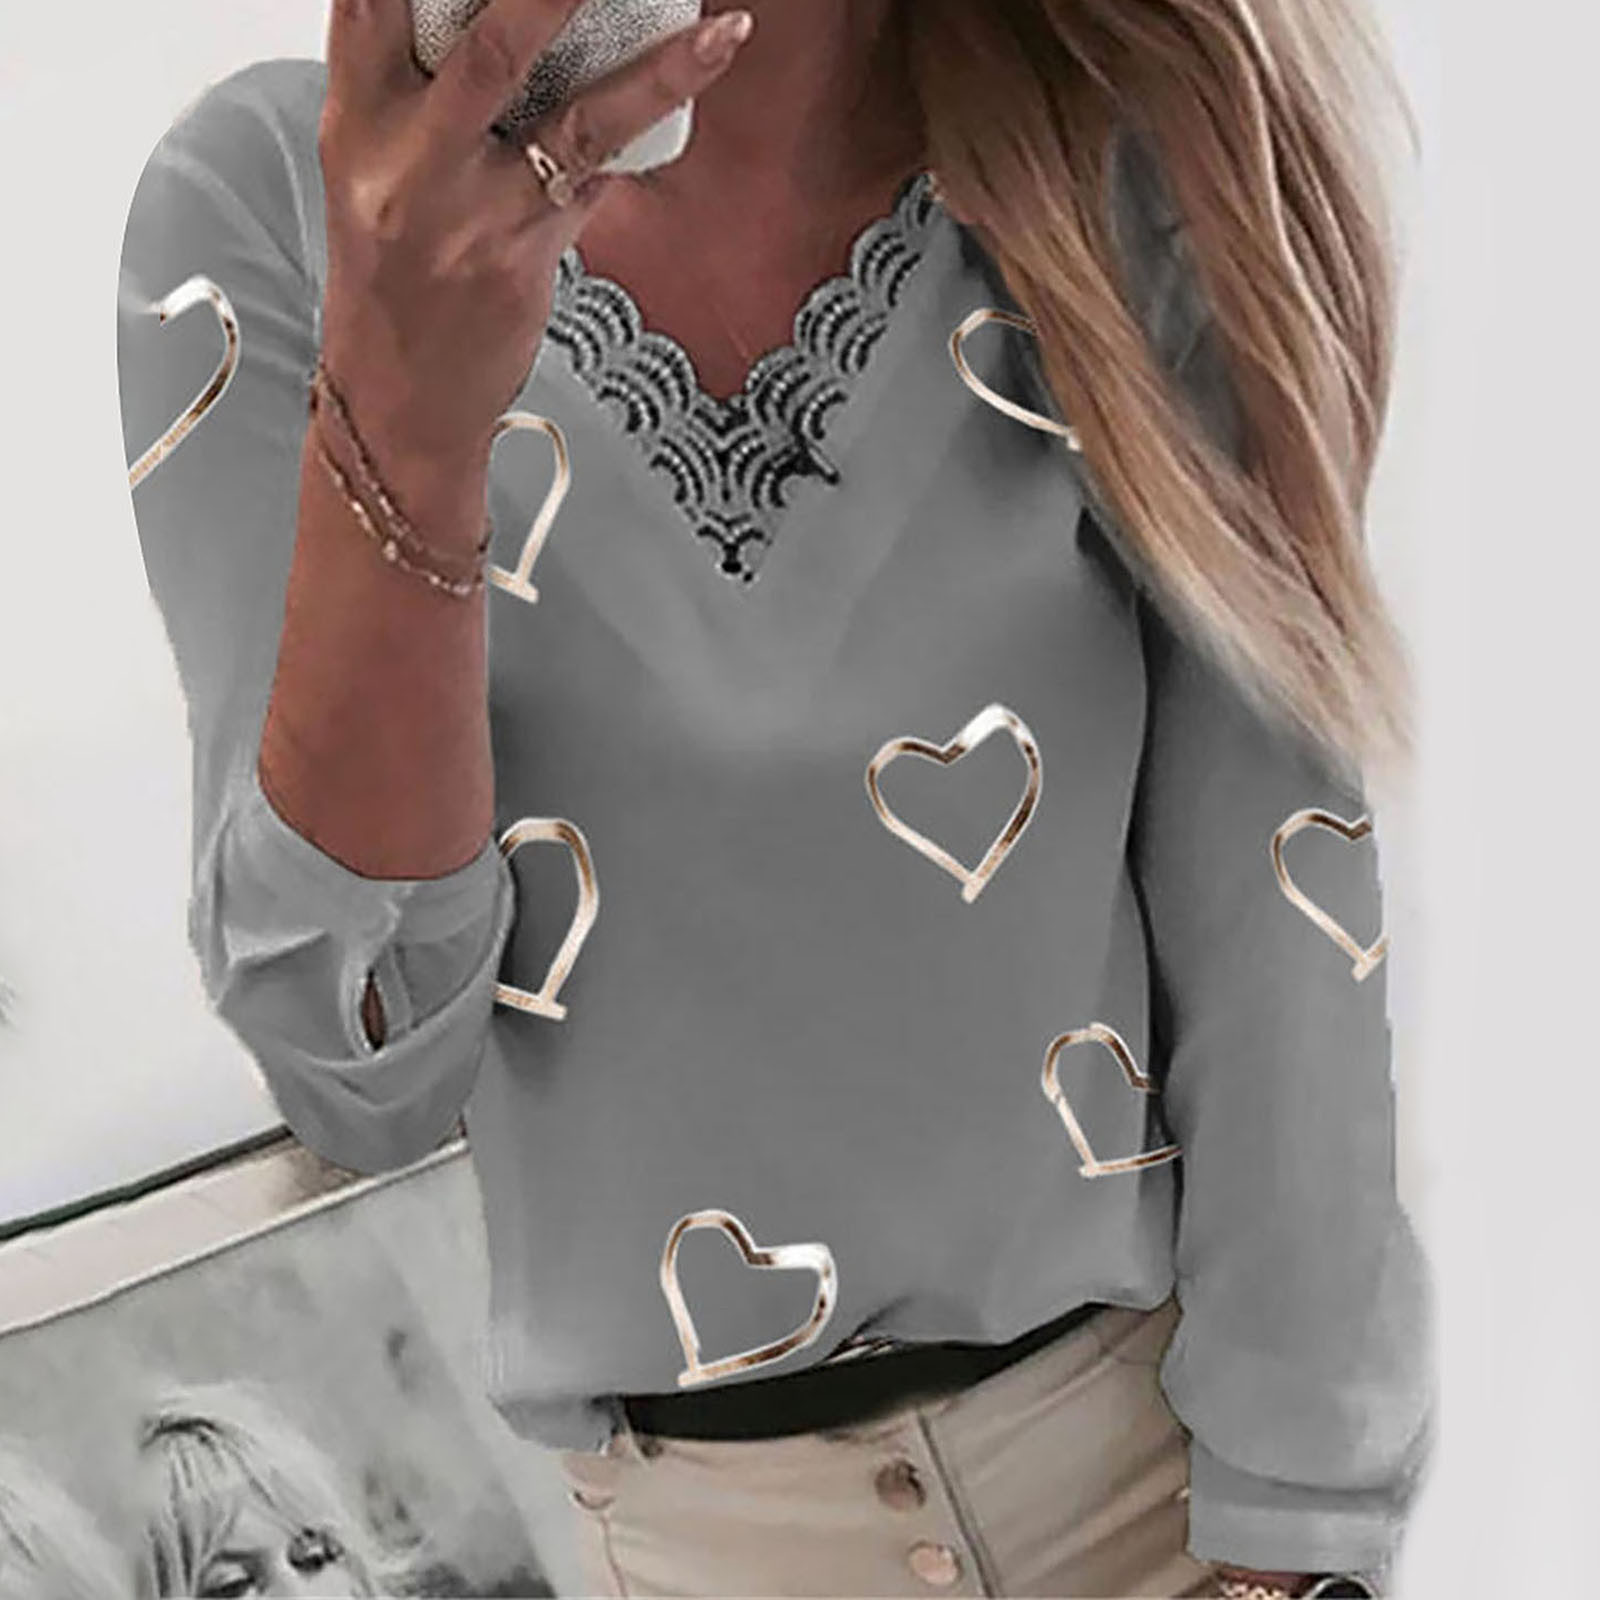 40# Lace Elegant Blouses Women Hearts Print V neck Lace Patchwork Long Sleeve Tee Shirt Top Blouse Oversize Plus Size Ropa Mujer